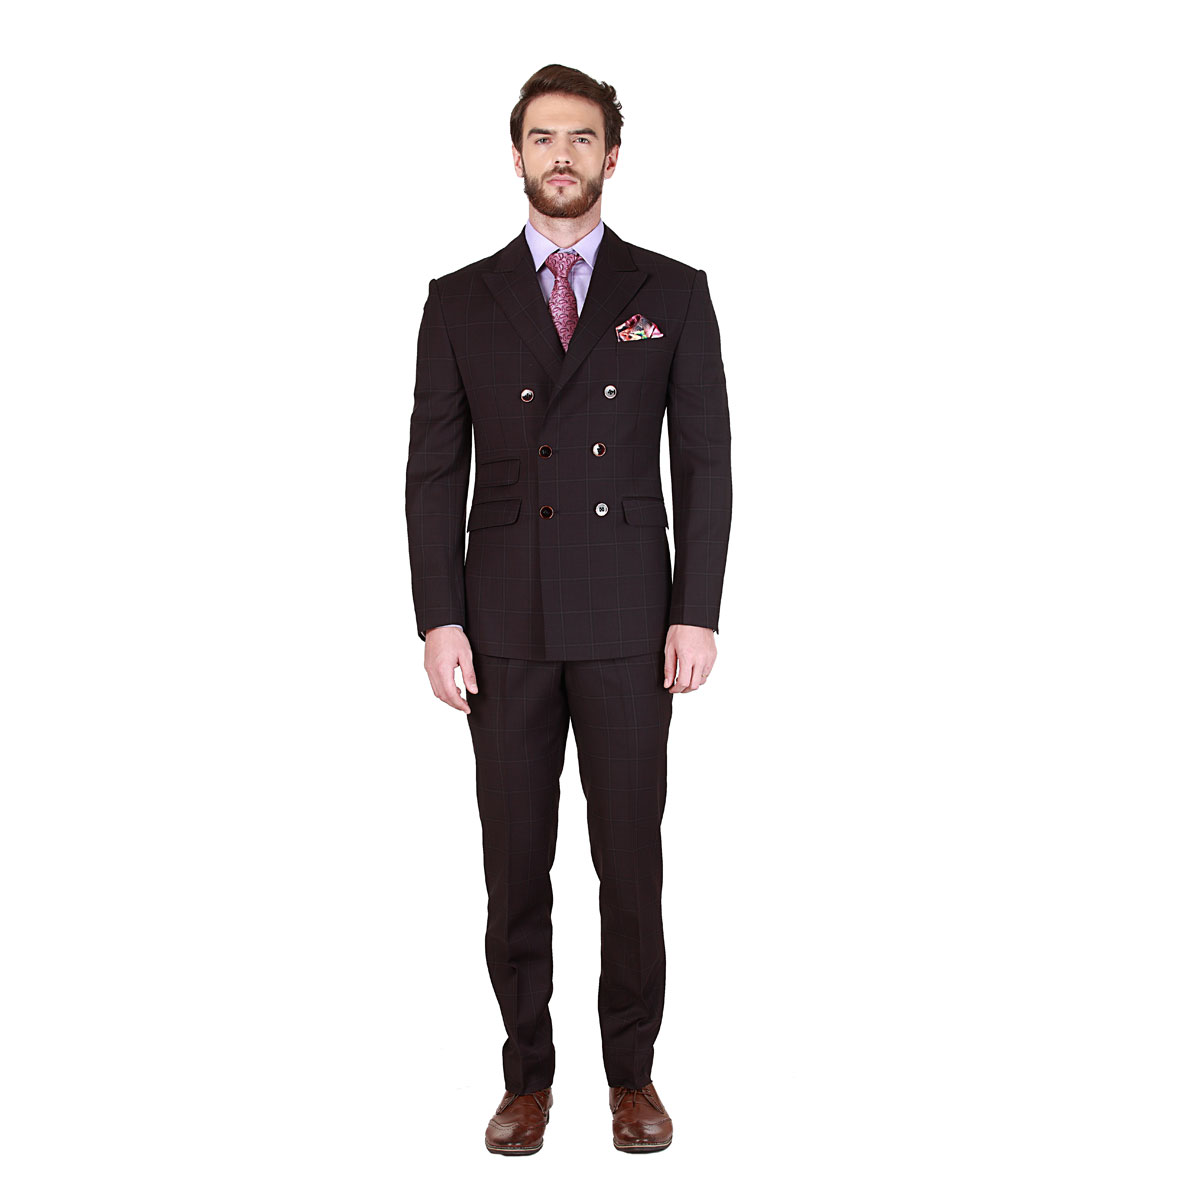 release date unique style world-wide renown Royal Rich Brown Suit